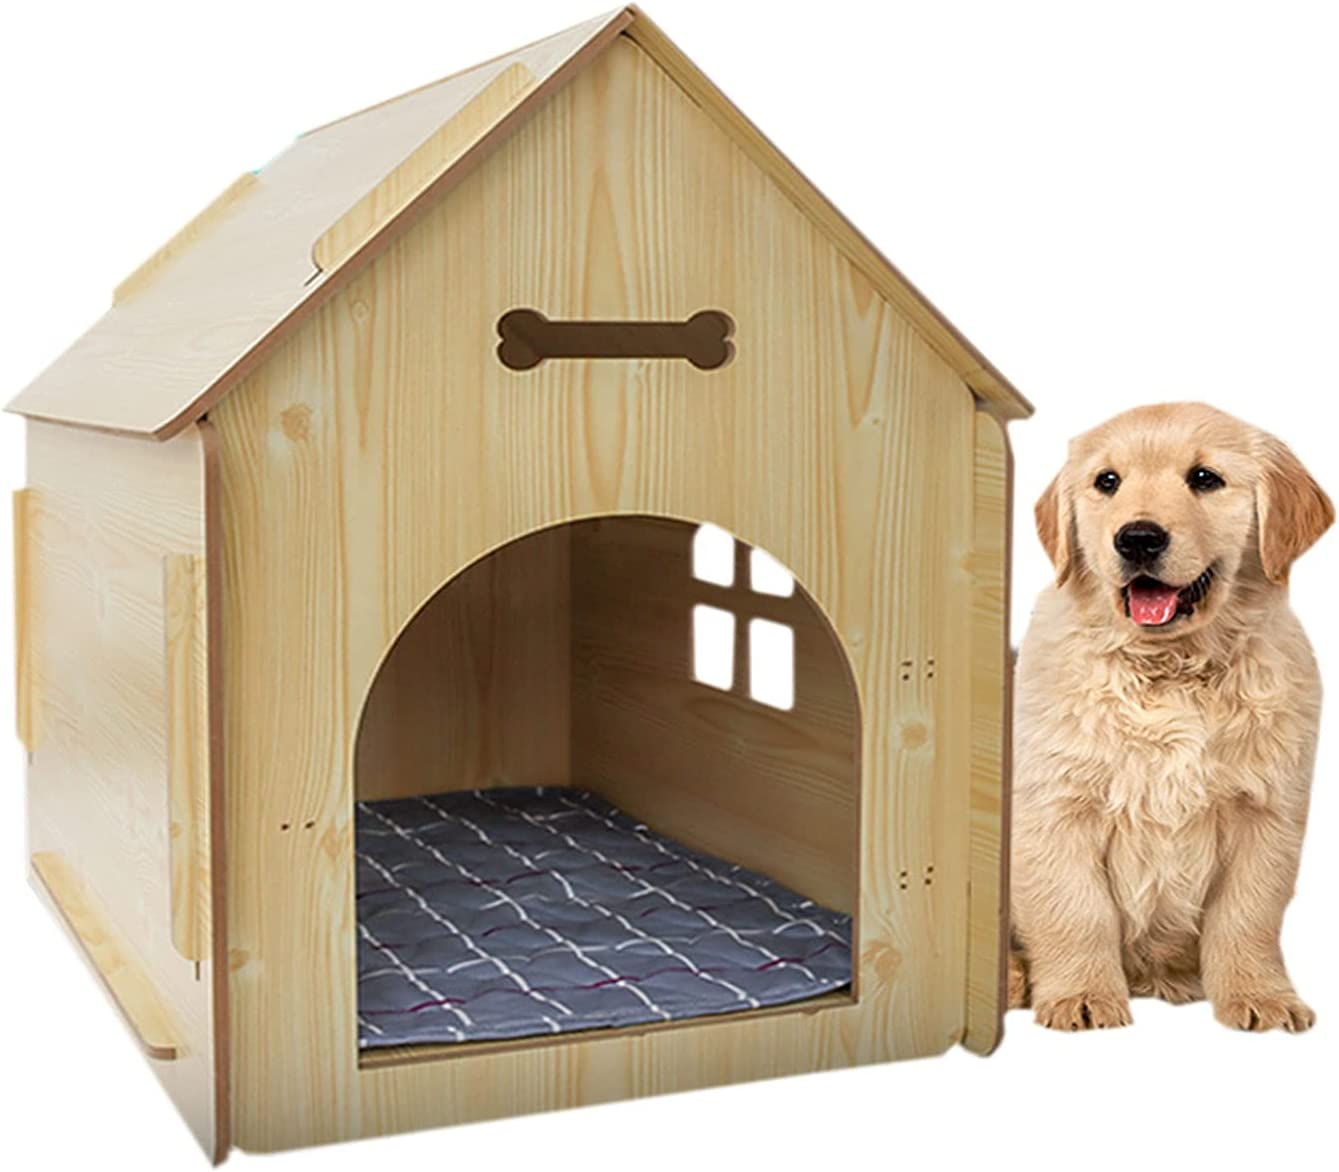 CHENGLONGTANG Super beauty product restock quality top! Pet Supplies Dog House Sma Cat Outdoor Memphis Mall